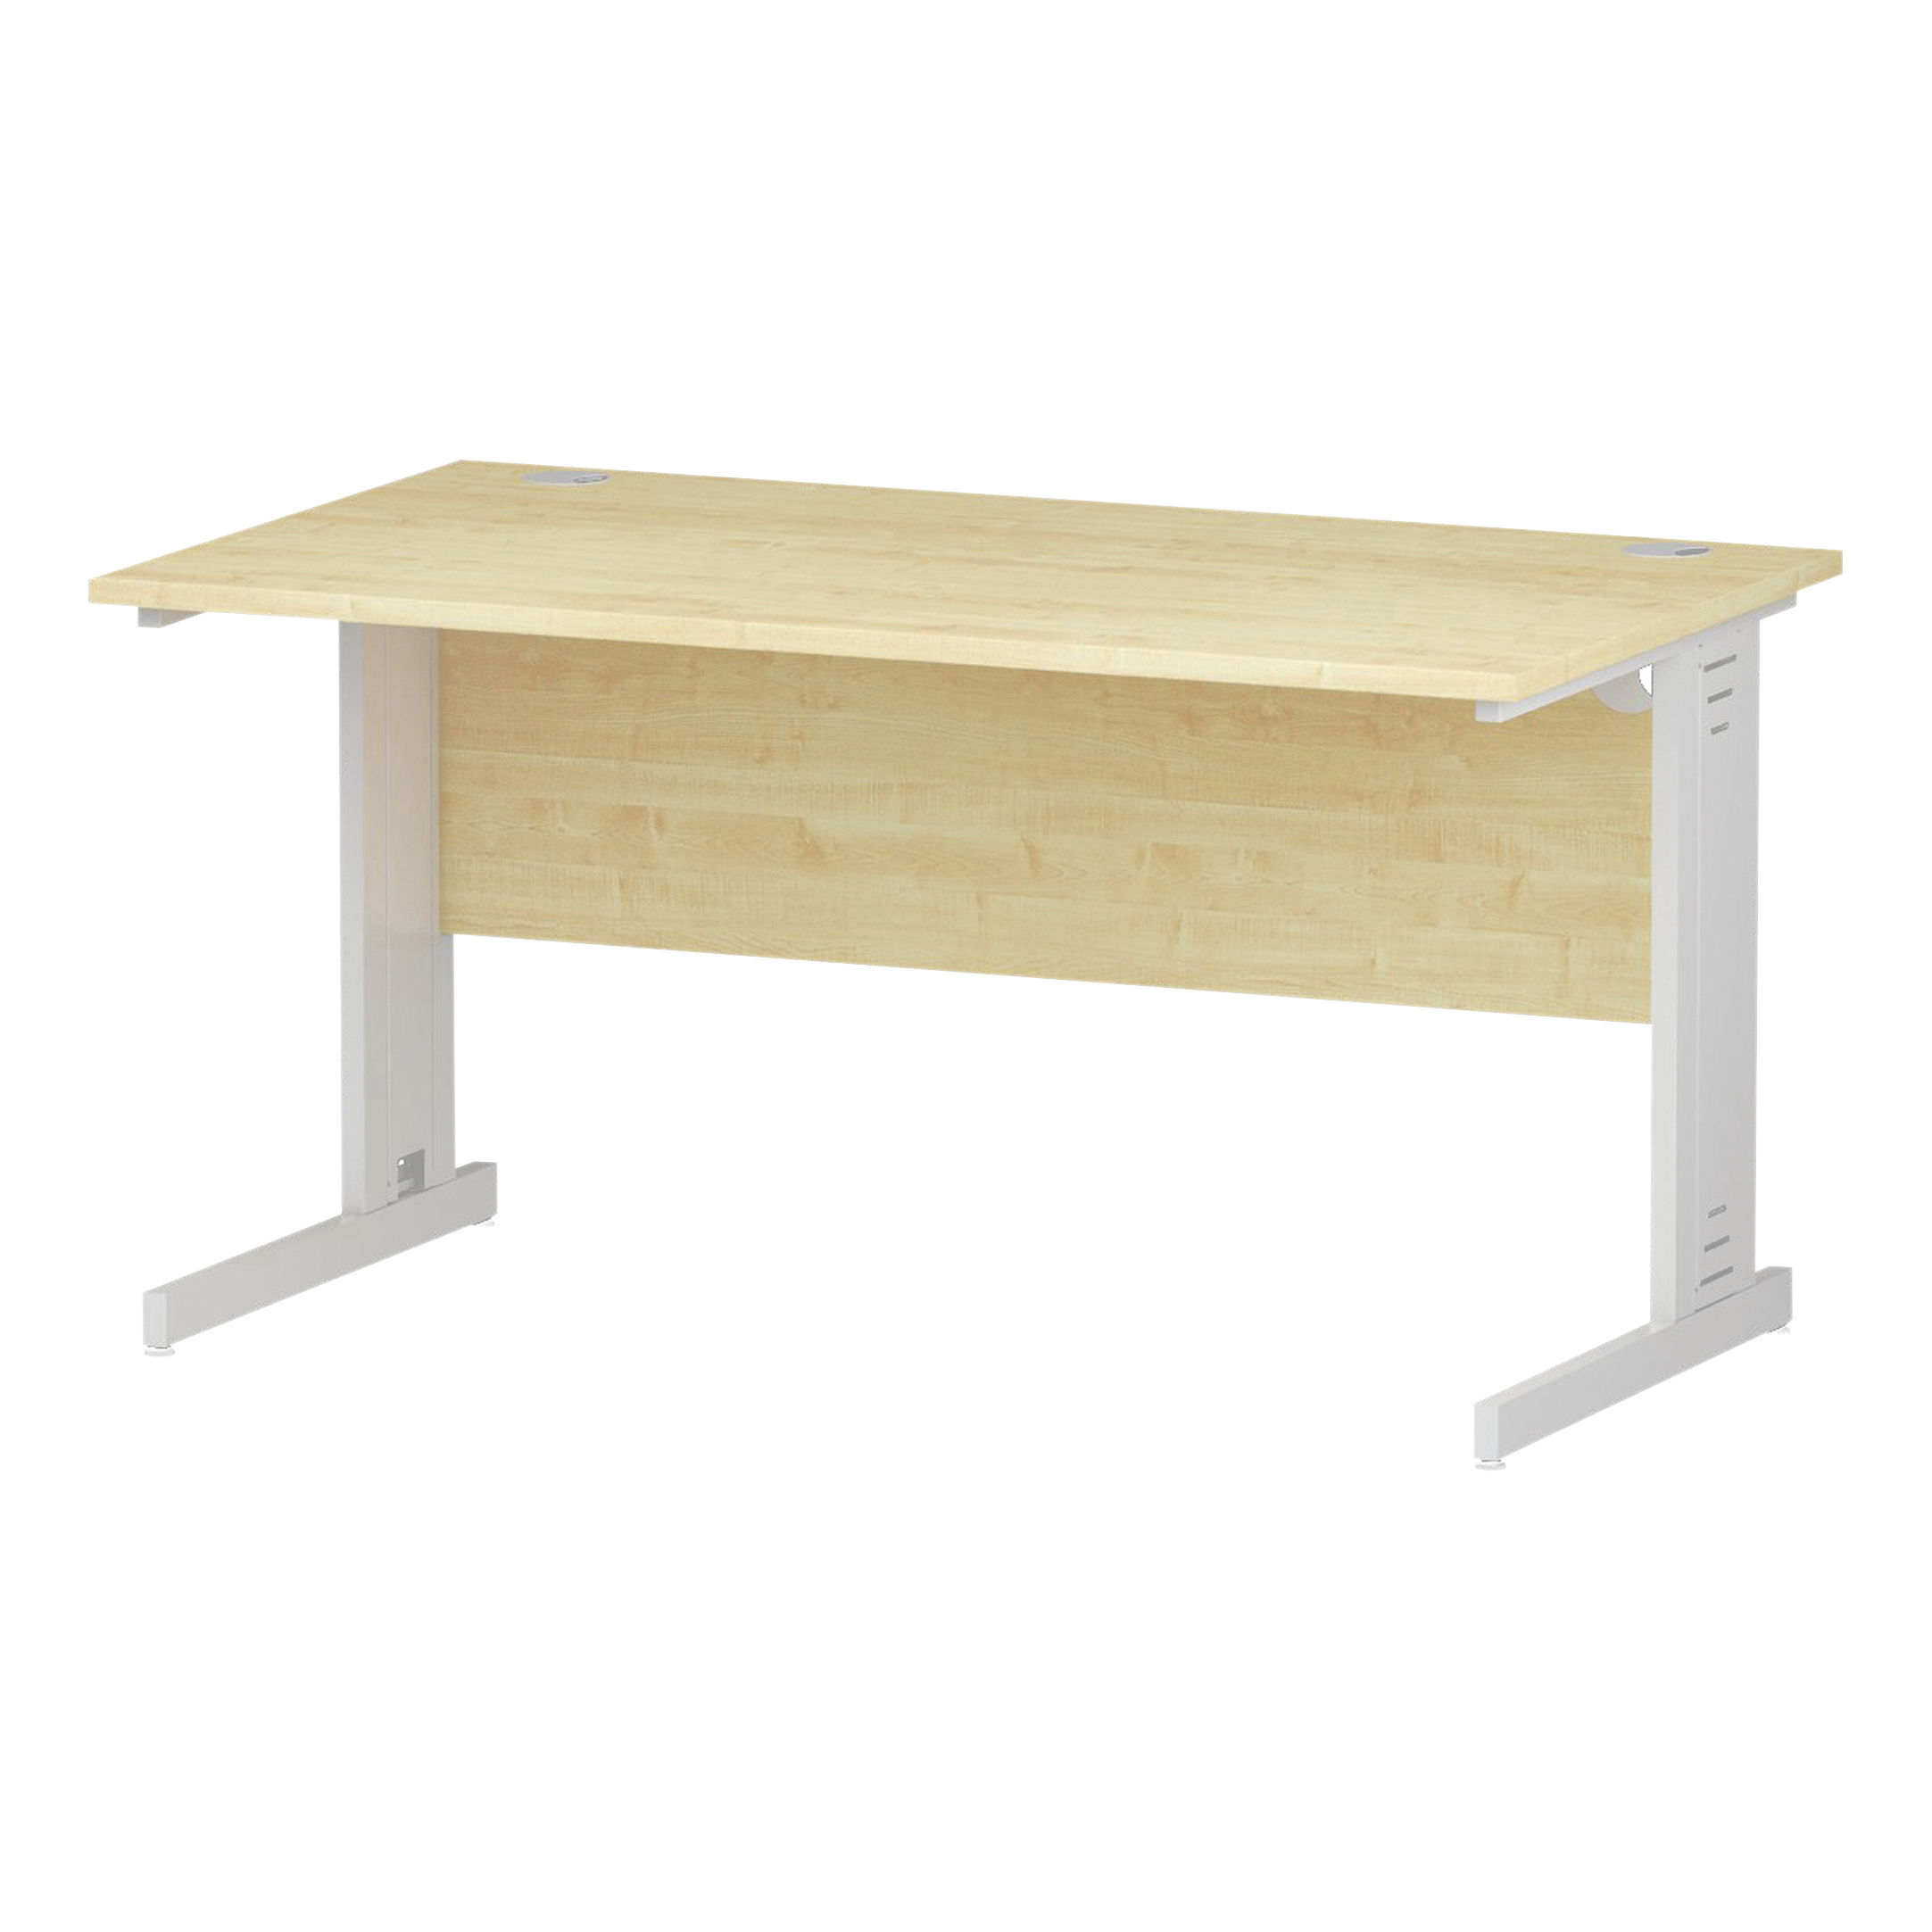 Trexus Rectangular Desk White Cable Managed Leg 1400x800mm Maple Ref I002498